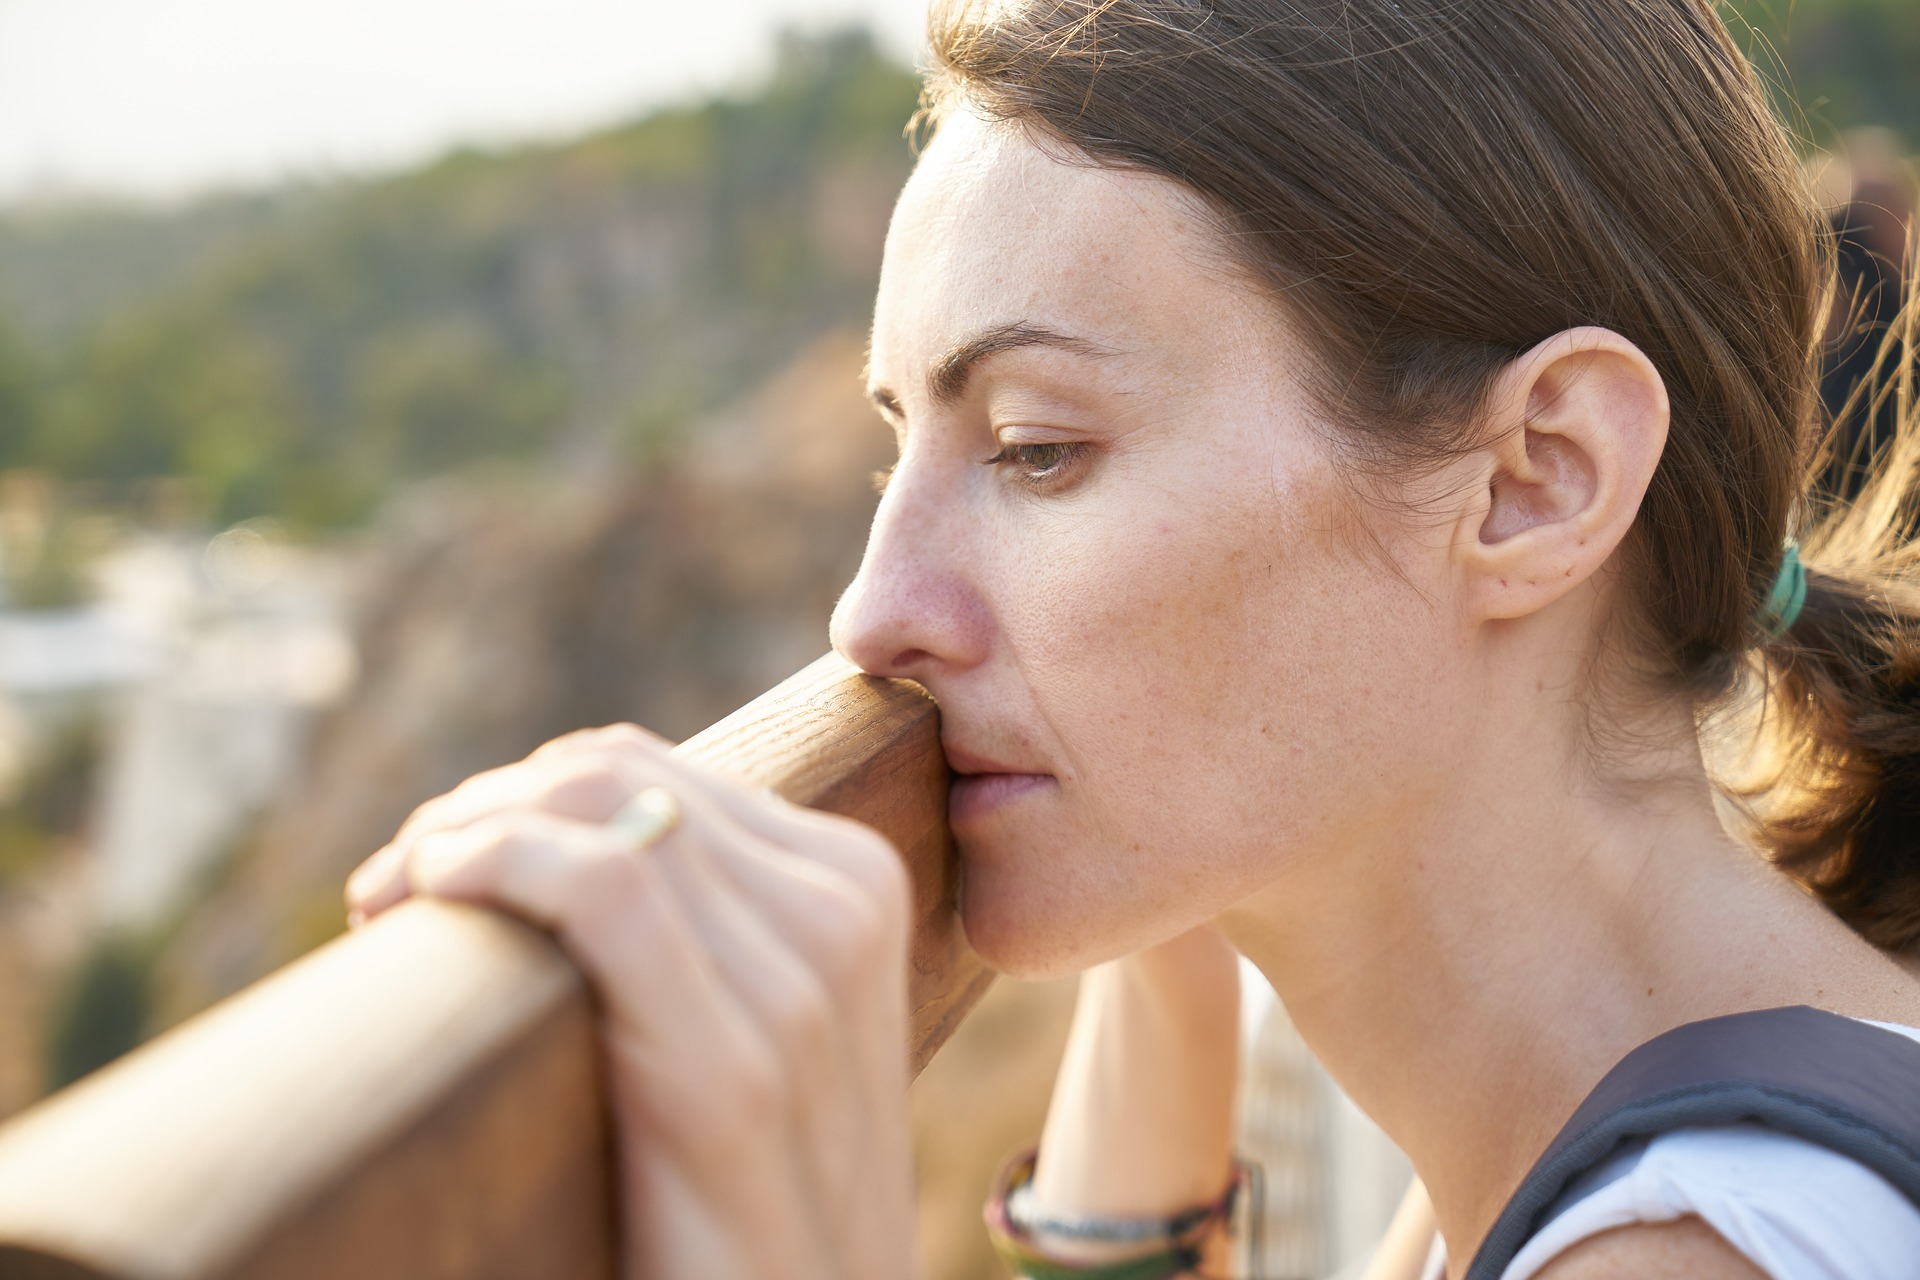 Woman's face overlooking railing as she contemplates suicide